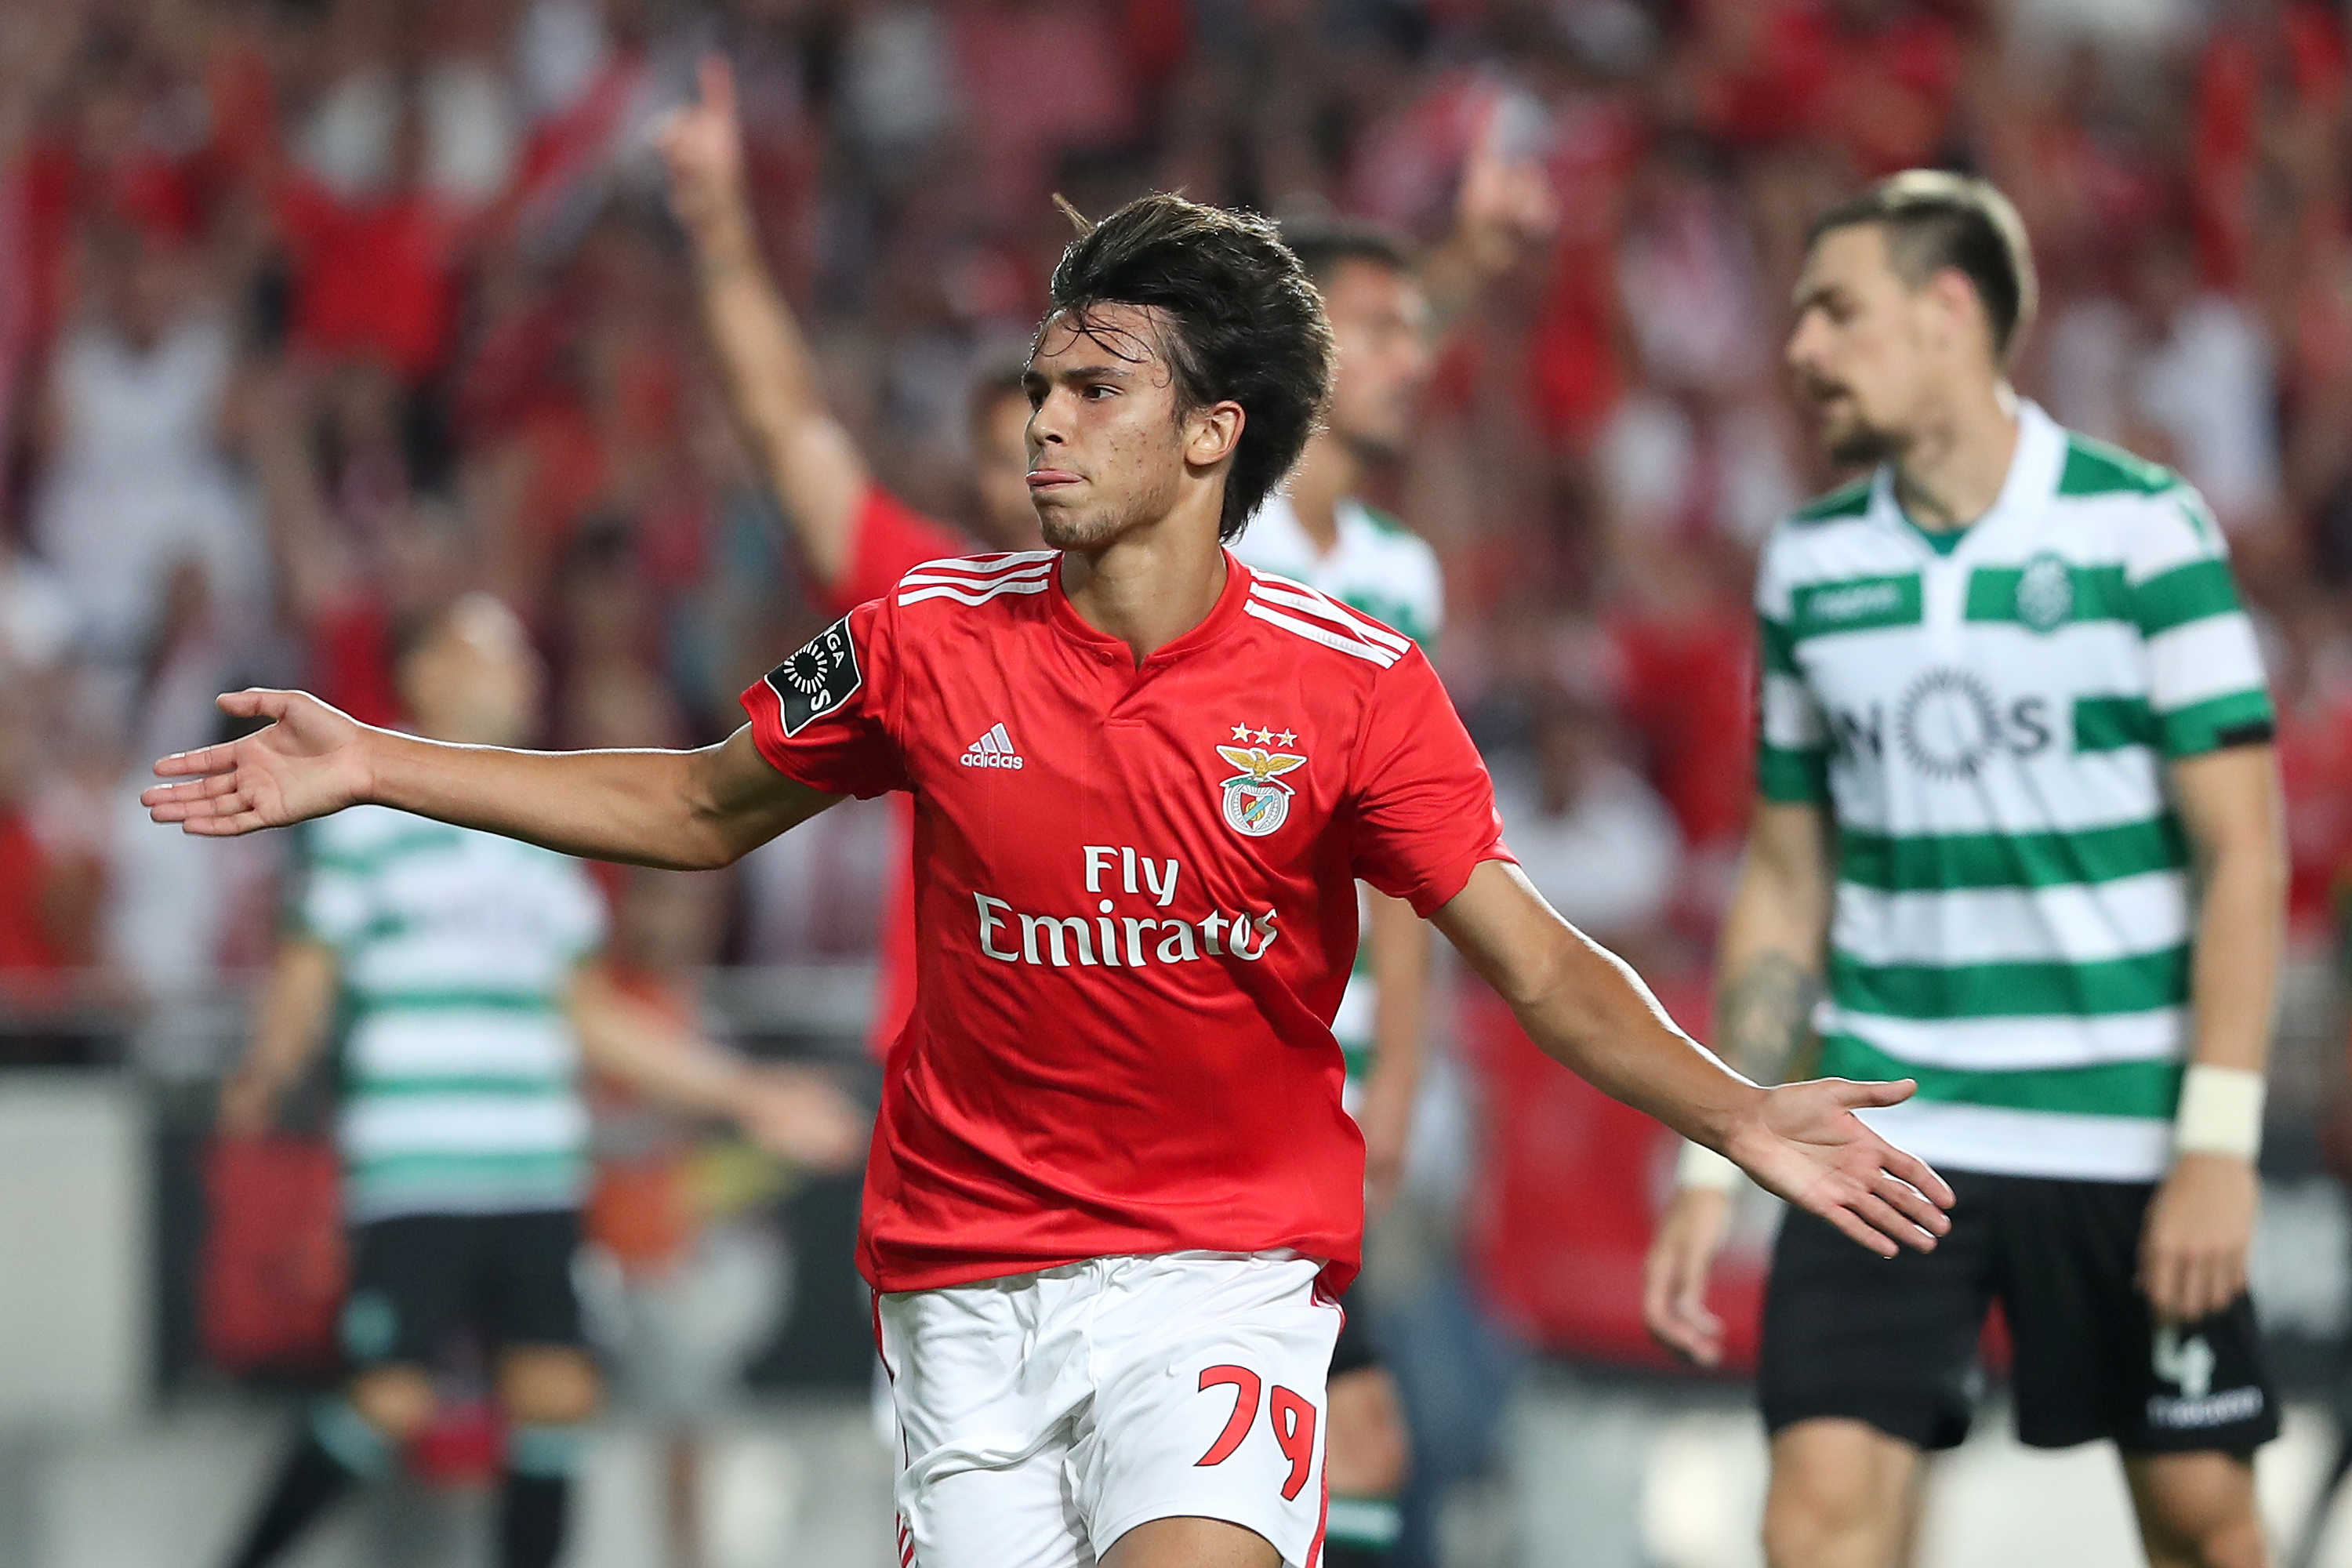 Felix celebrates his goal against Sporting. Image: PA Images